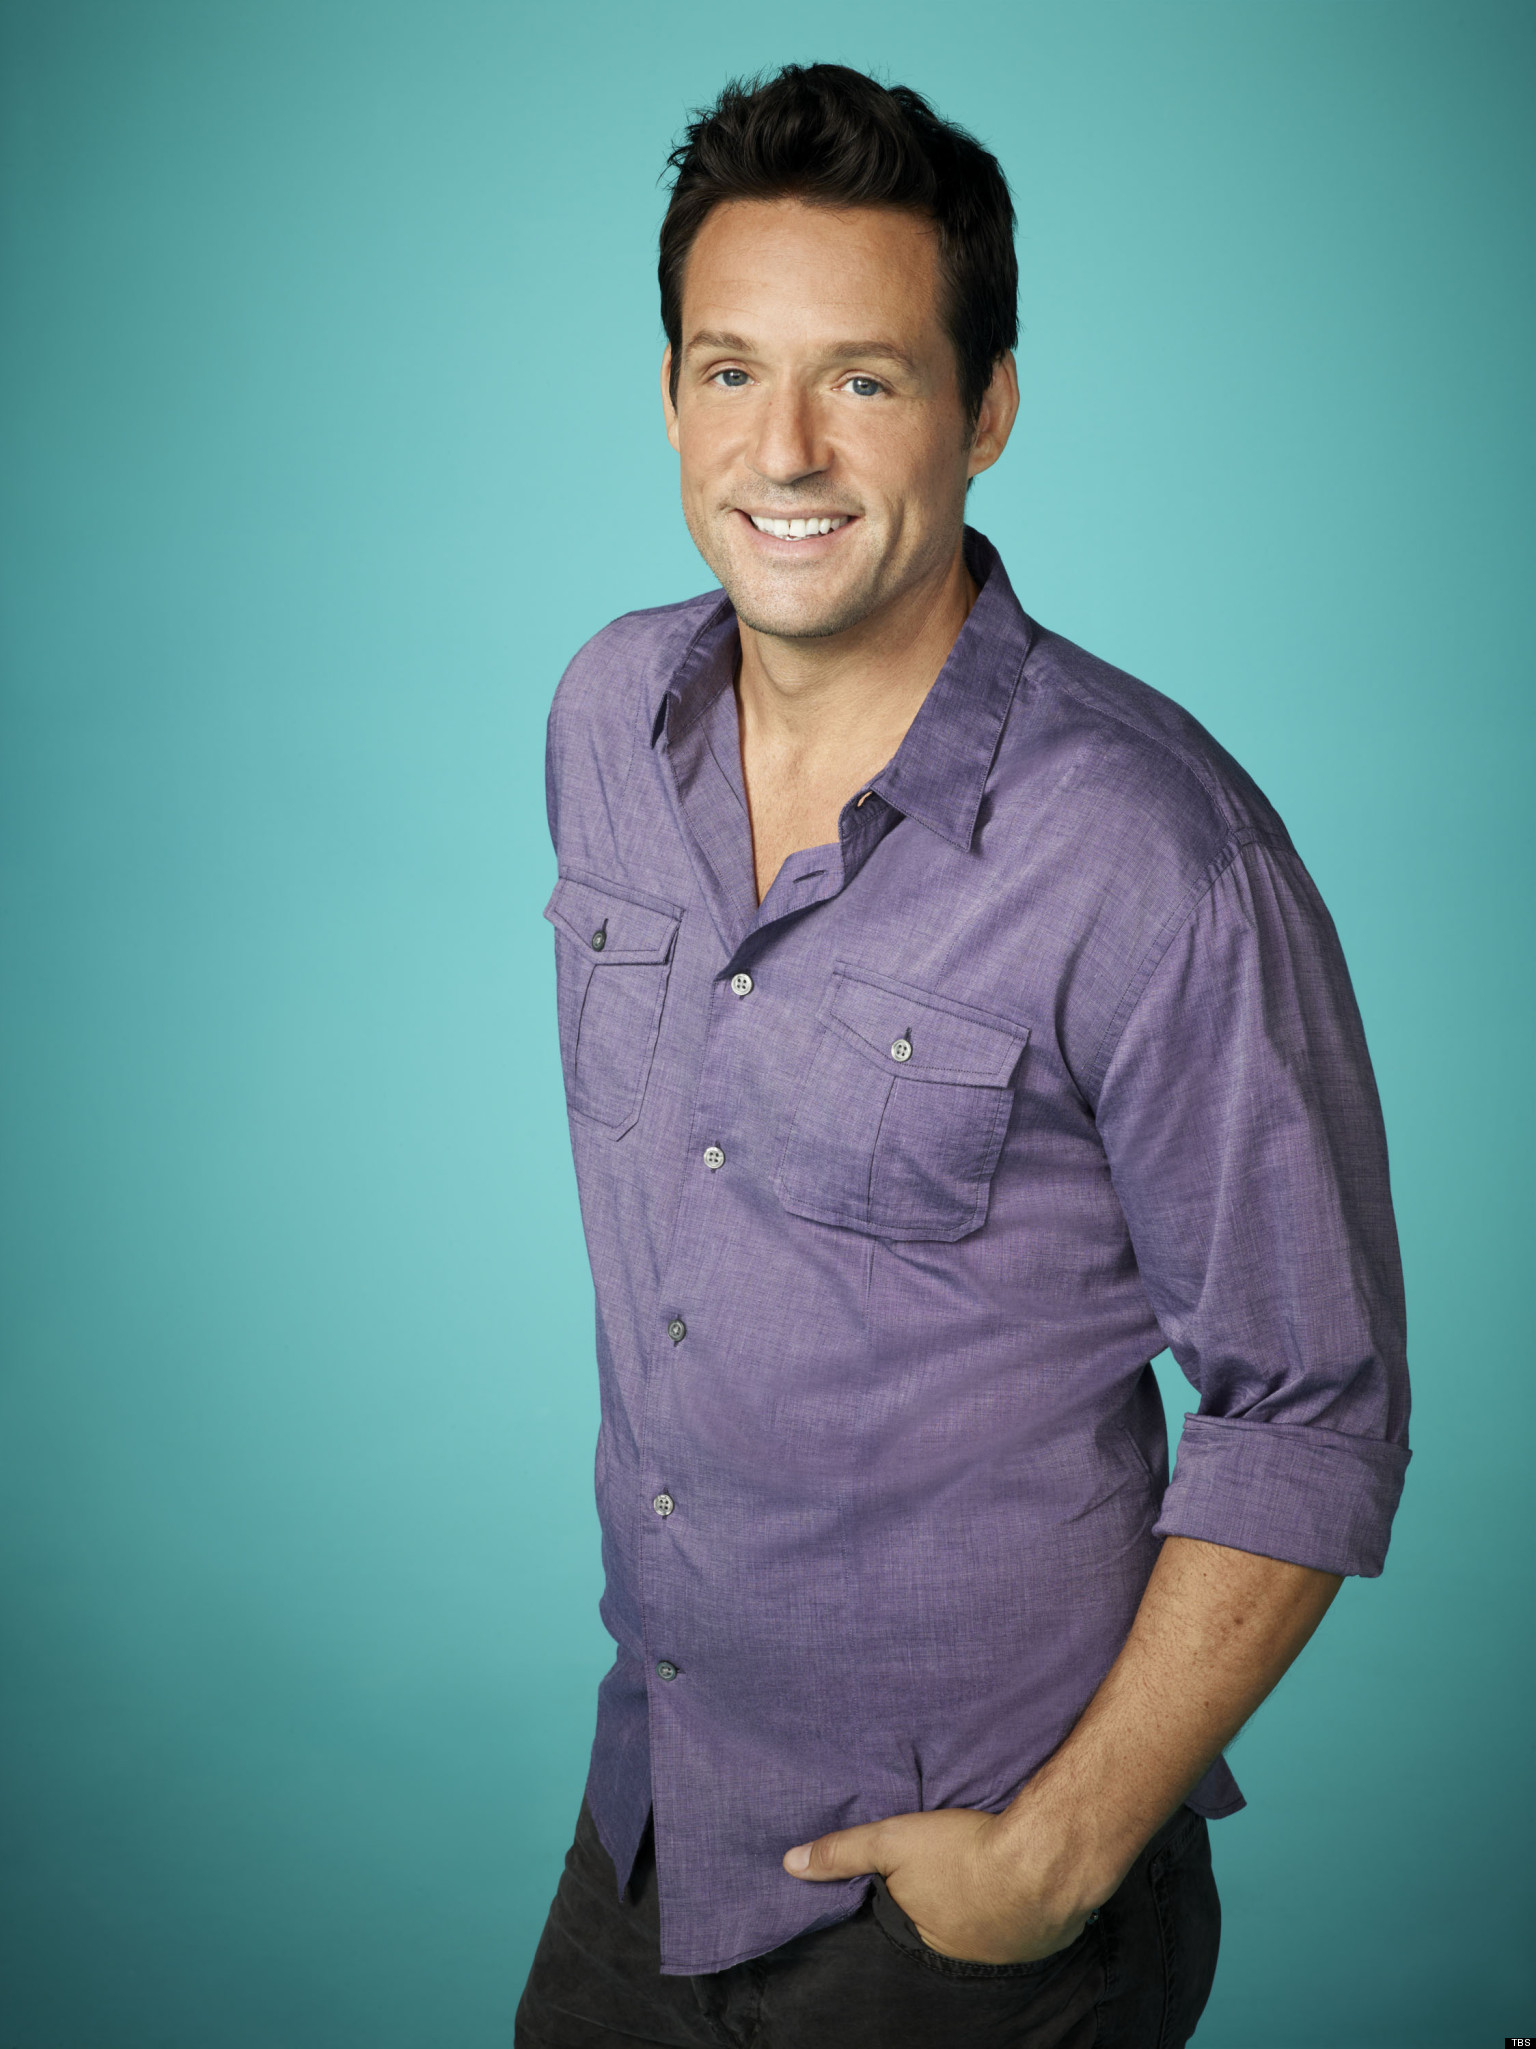 josh hopkins married